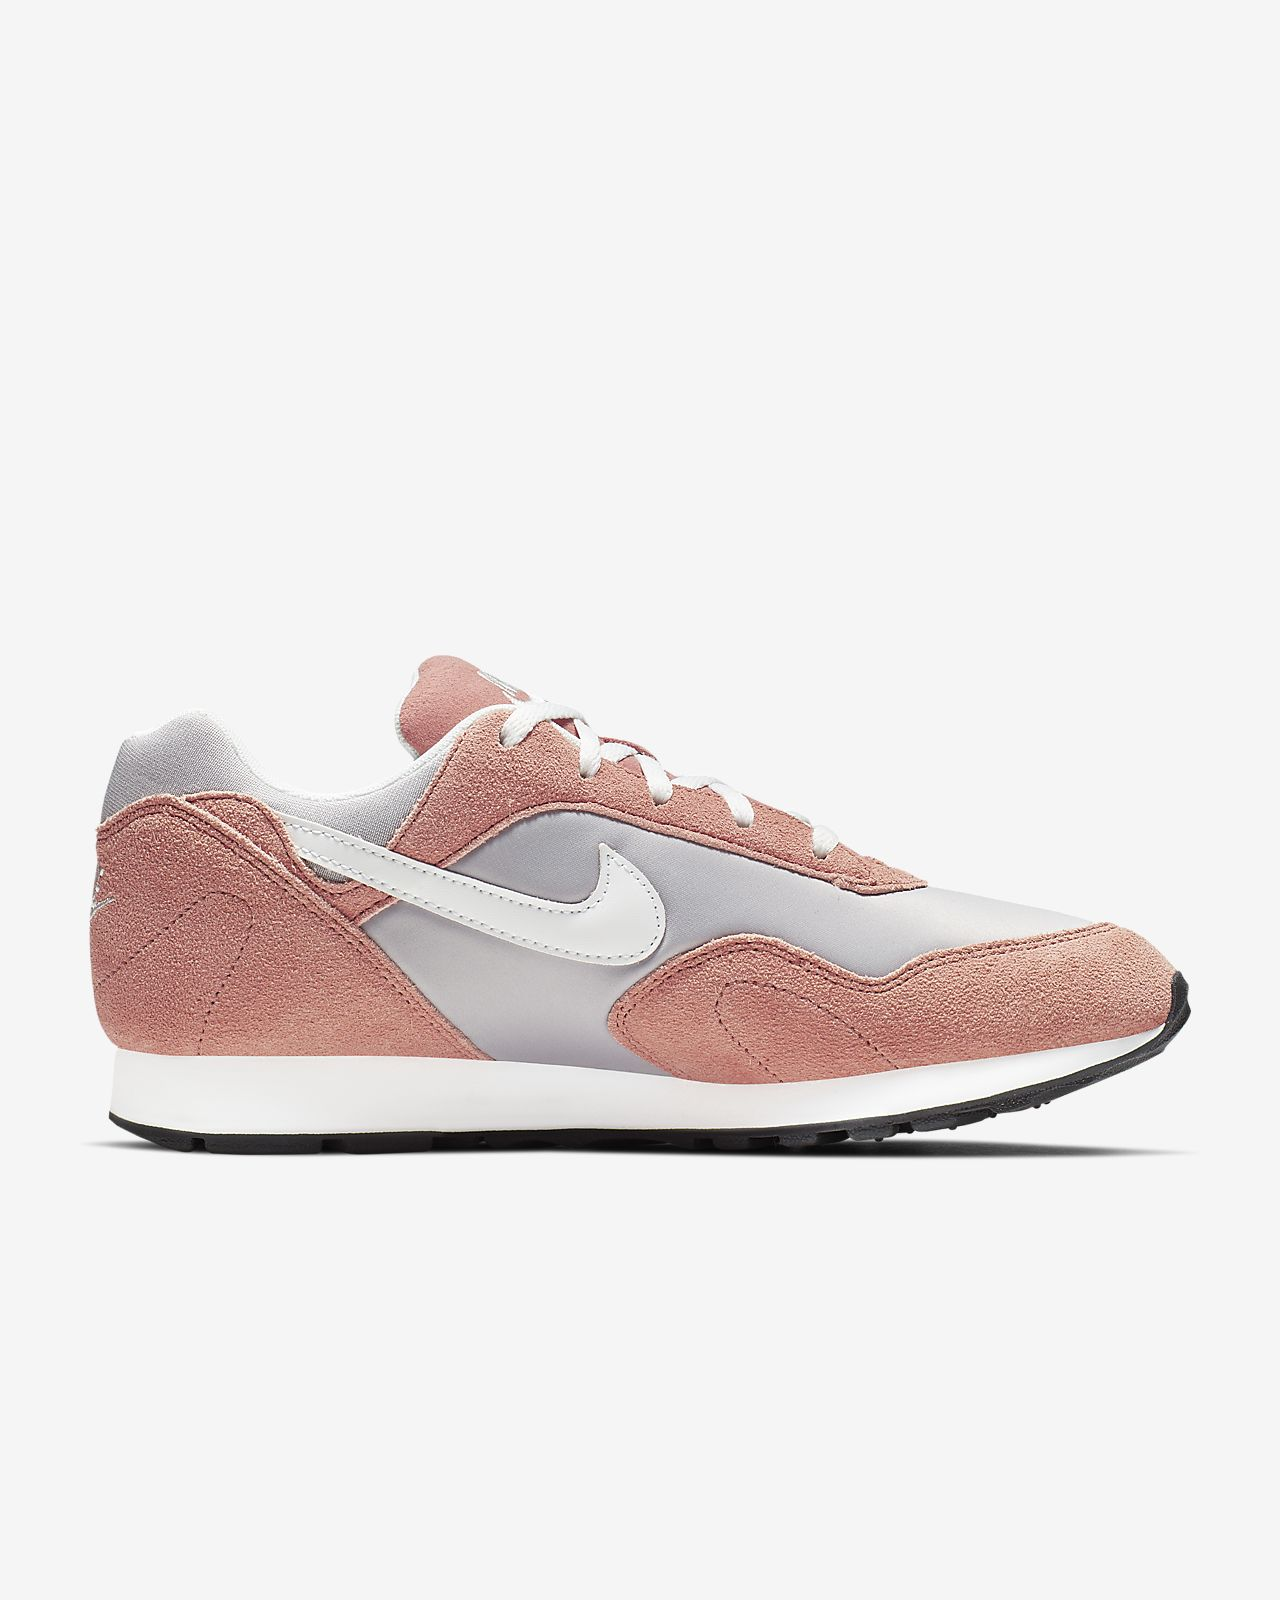 big sale 63711 0845c Low Resolution Nike Outburst Womens Shoe Nike Outburst Womens Shoe